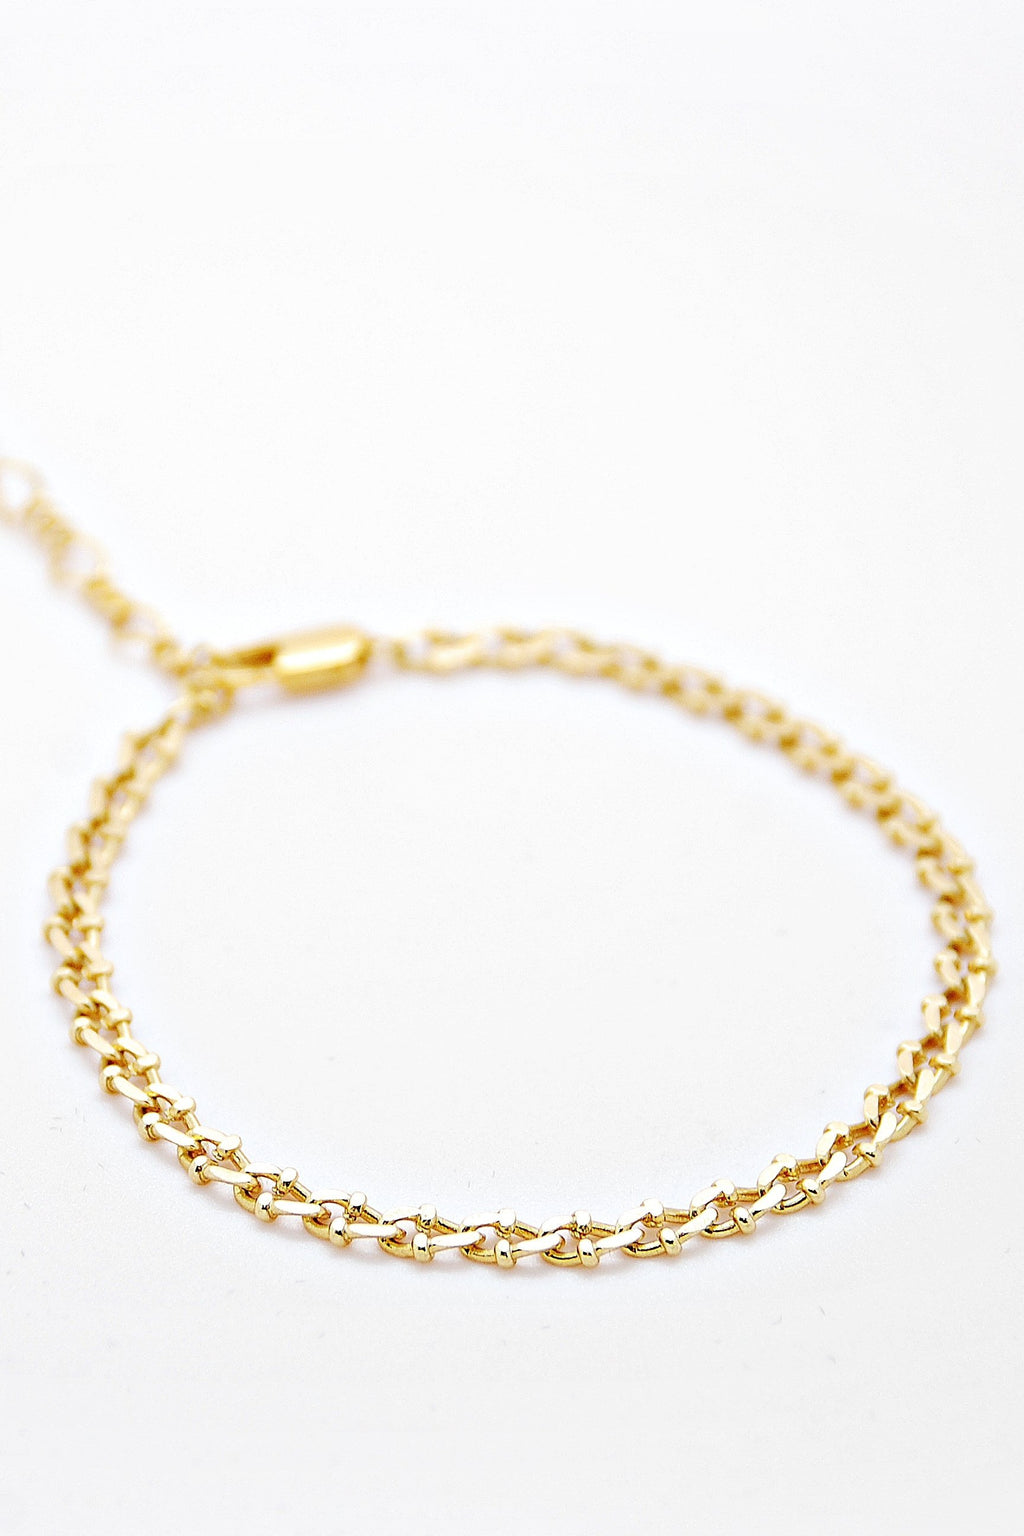 Vintage Chain bracelet - Detailed - Boutique Minimaliste